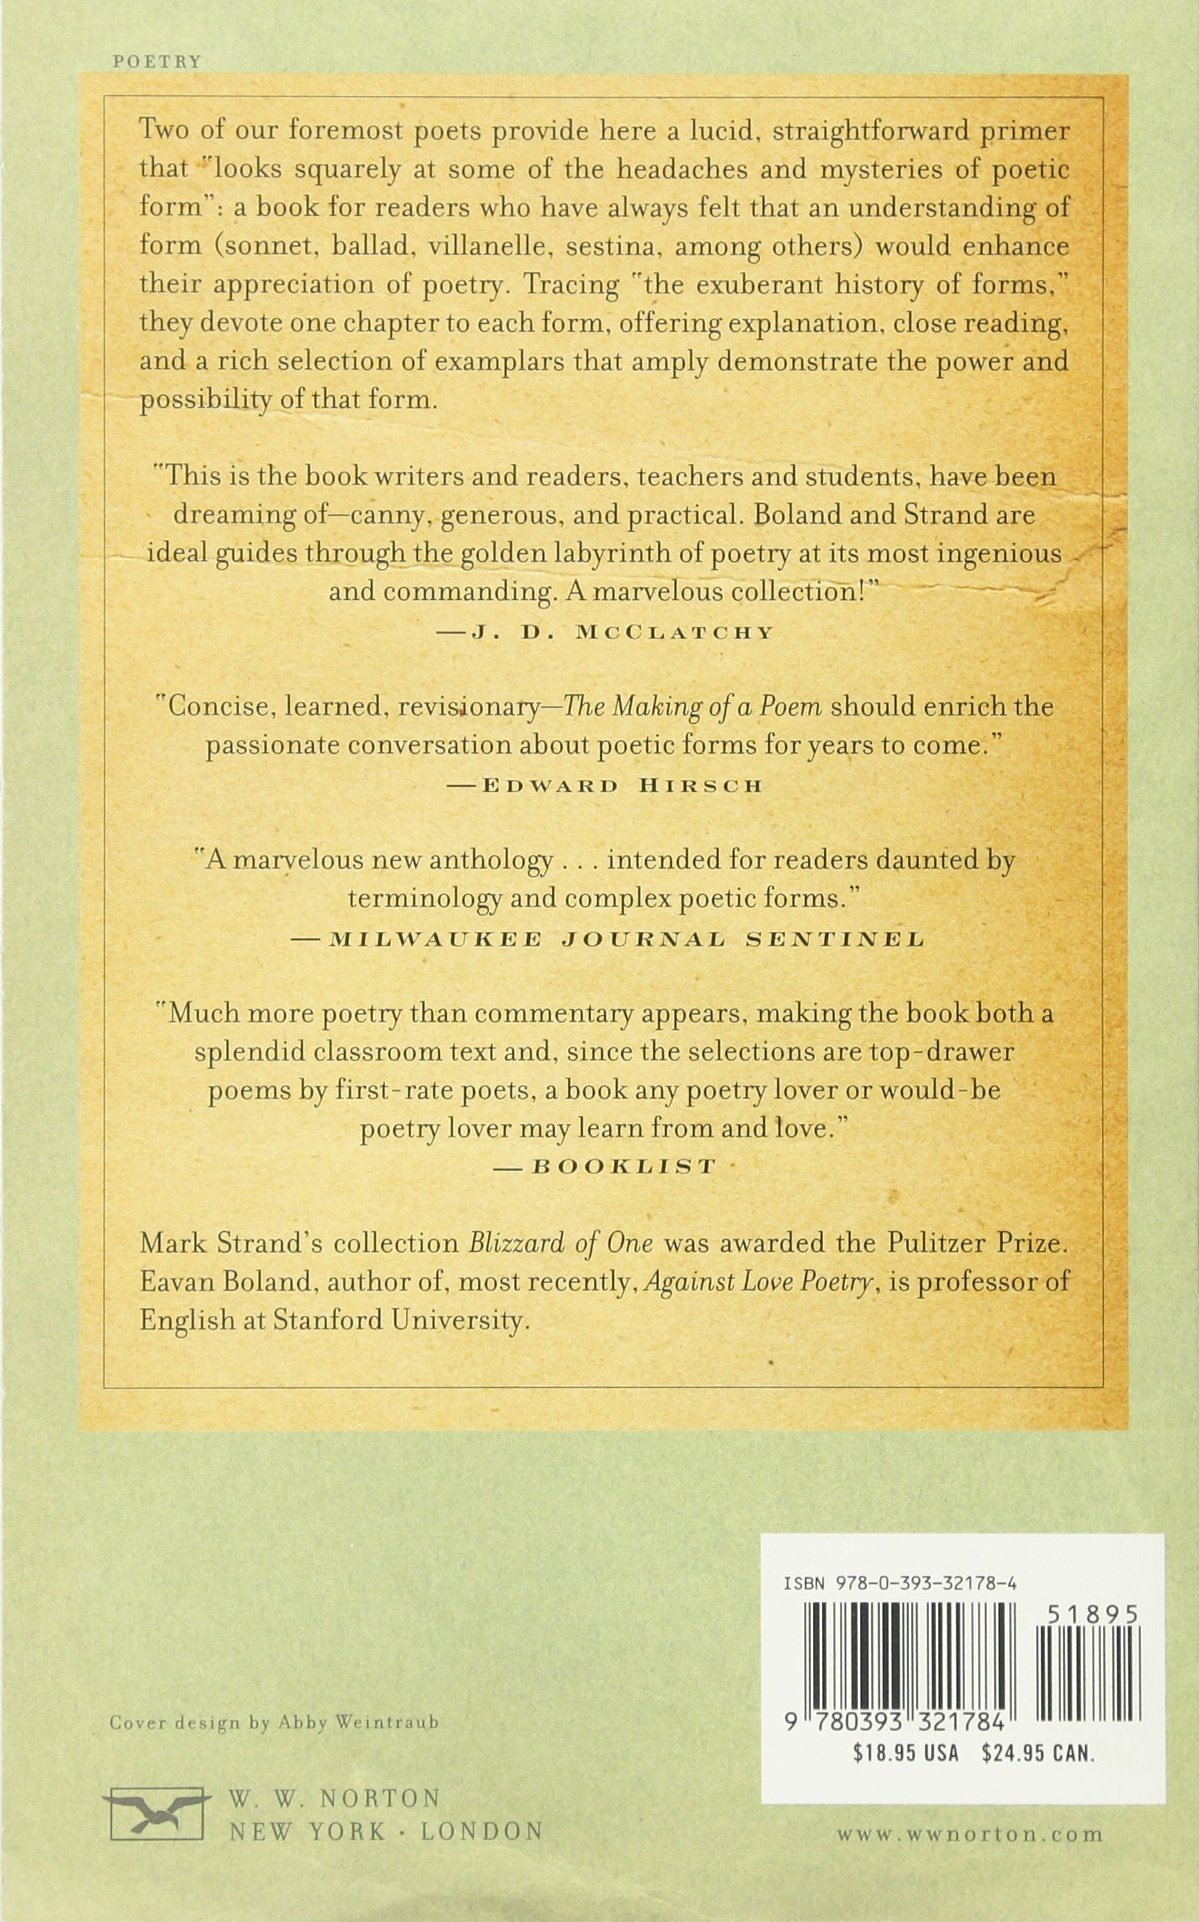 Amazon.com: The Making of a Poem: A Norton Anthology of Poetic Forms  (8601300247762): Eavan Boland, Mark Strand: Books